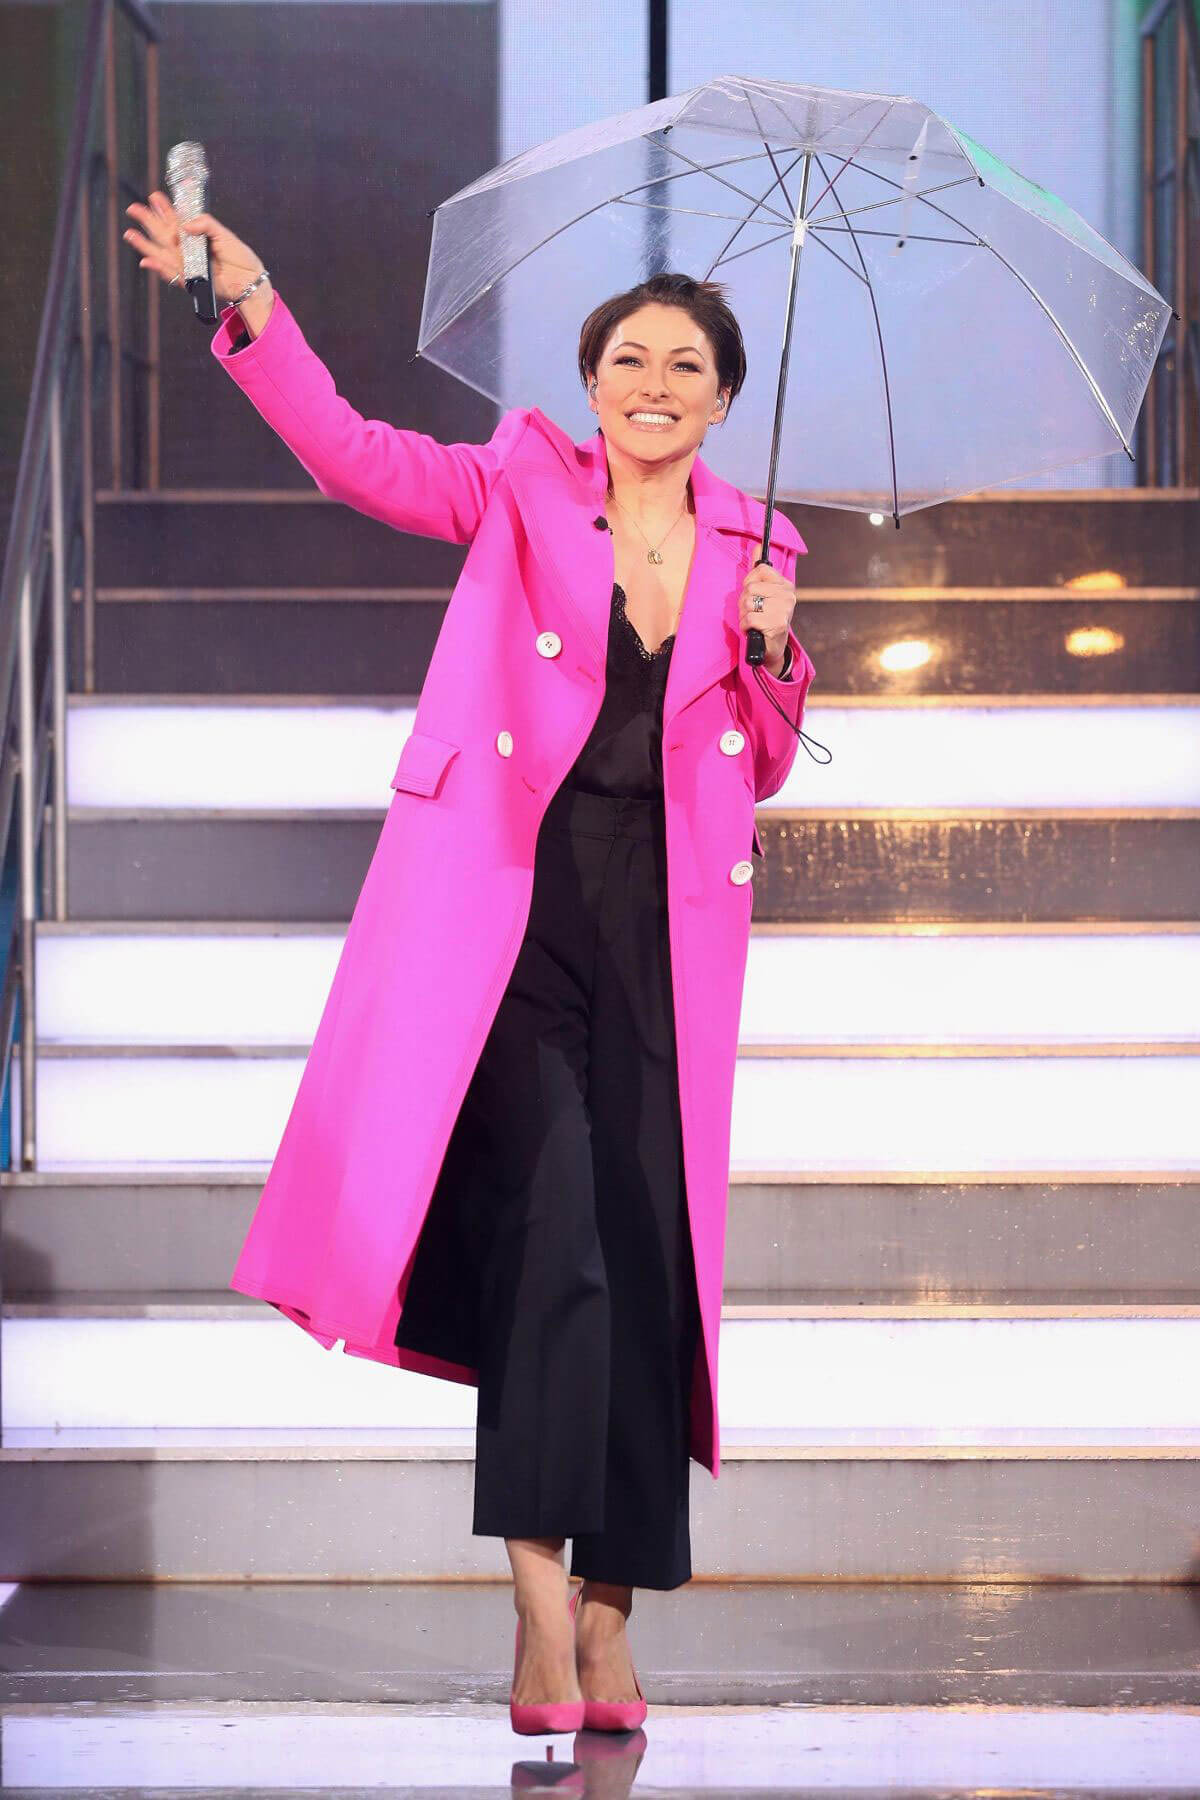 Watch Emma willis celebrity big brother launch night in england video